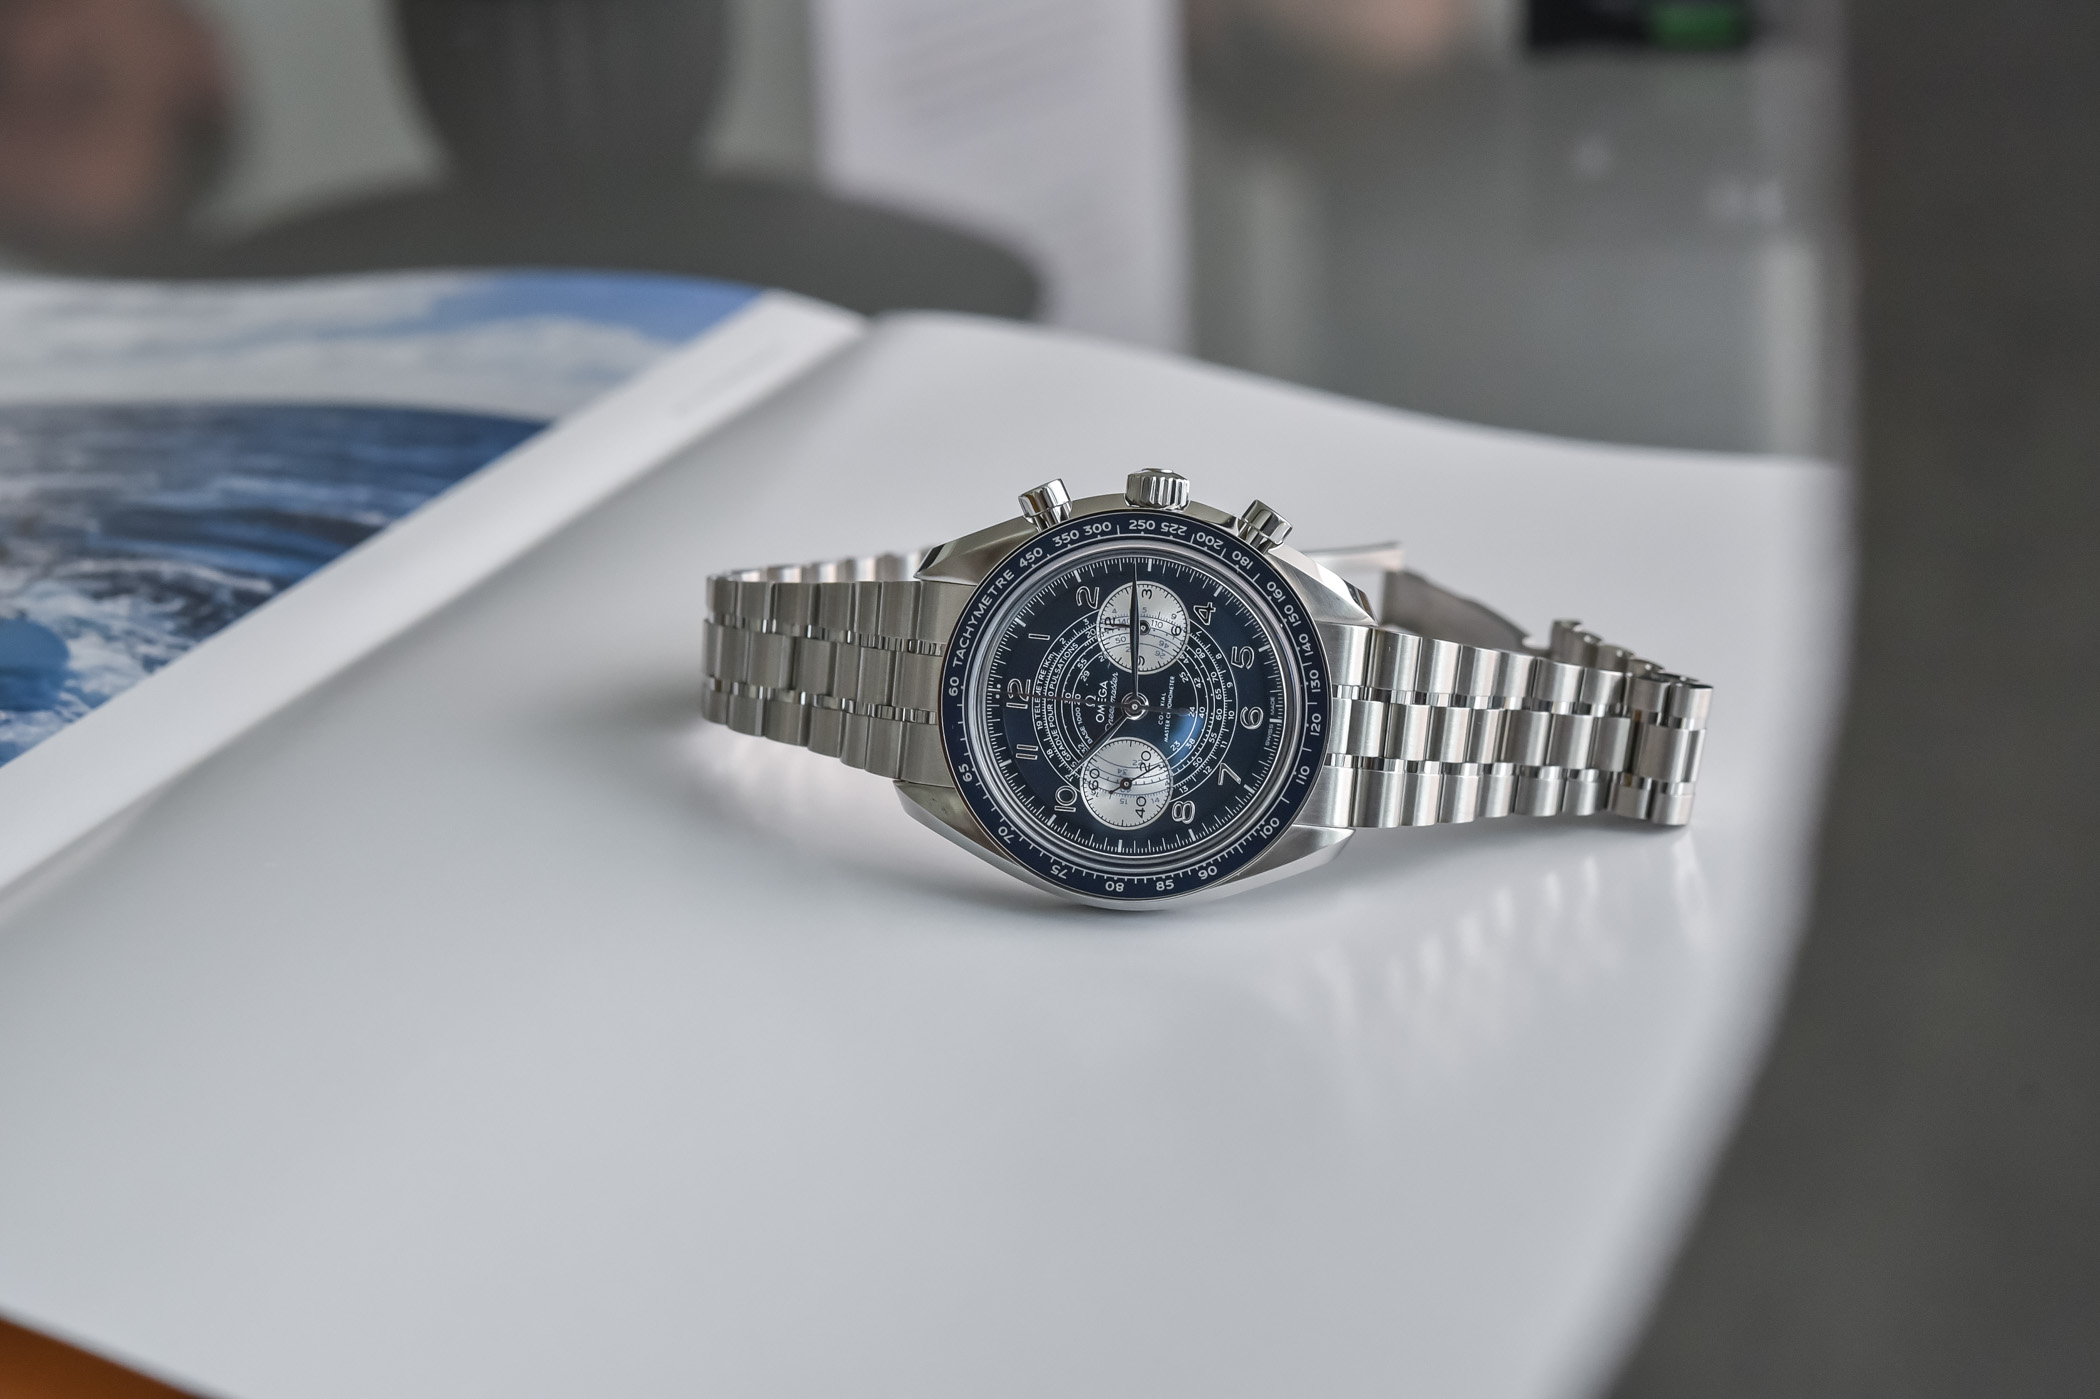 2021 Omega Speedmaster Chronoscope Collection review 329.30.43.51.03.001 12